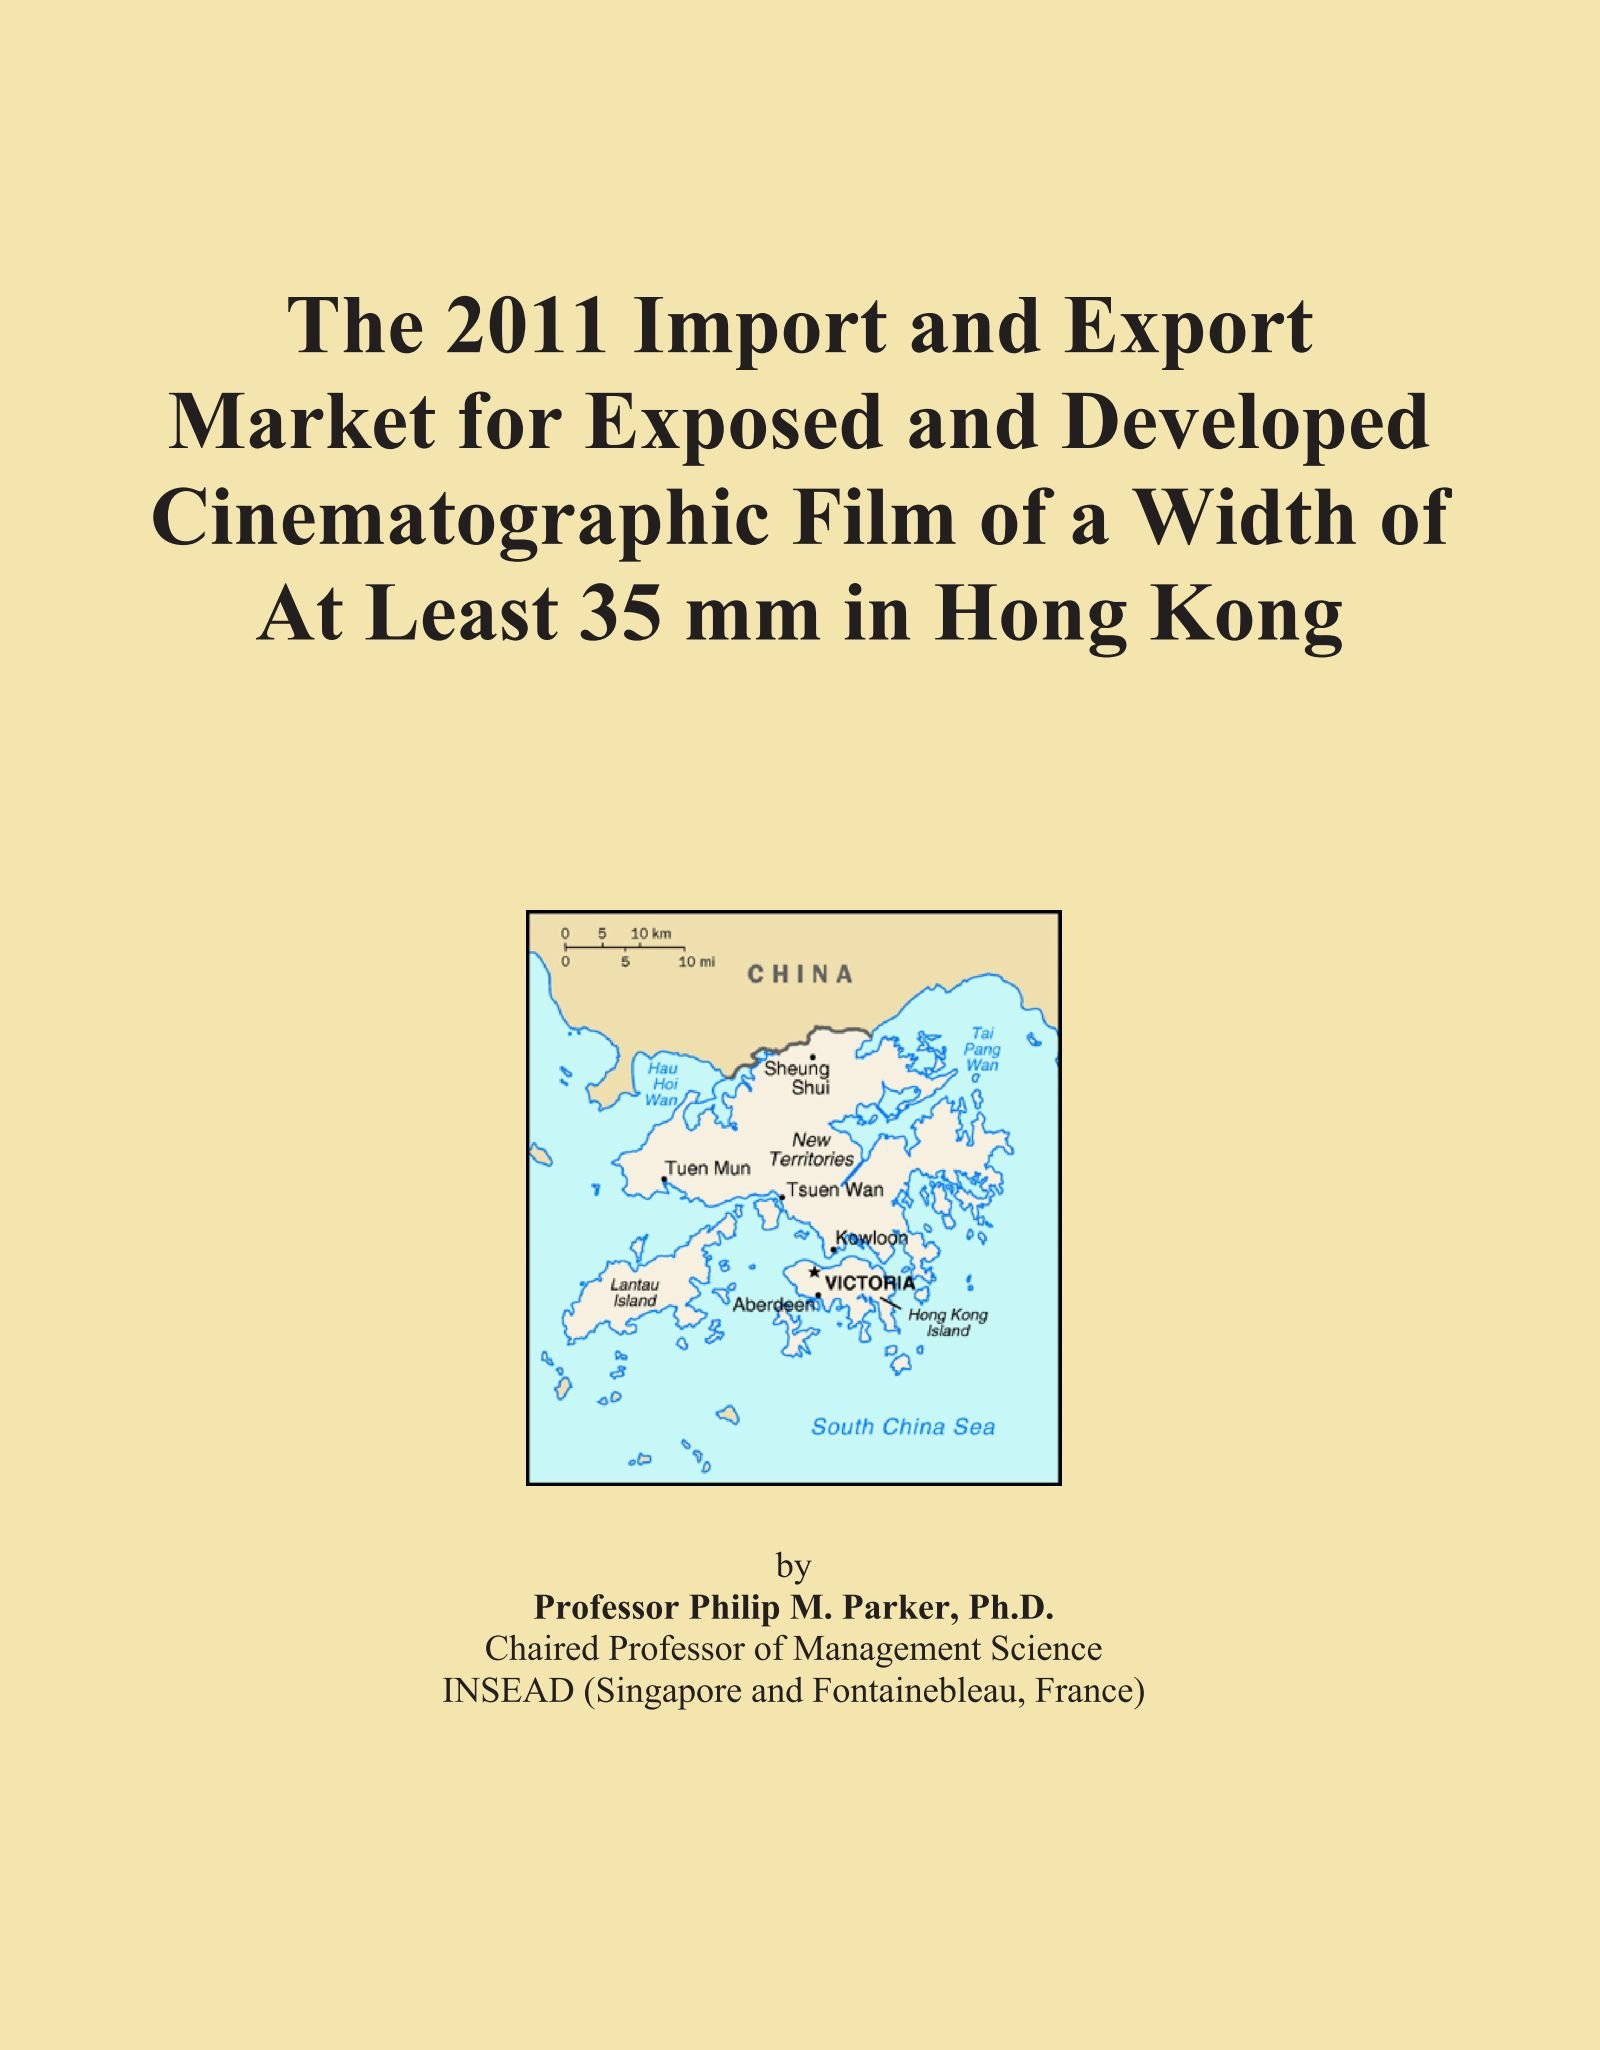 The 2011 Import and Export Market for Exposed and Developed Cinematographic Film of a Width of At Least 35 mm in Hong Kong ebook